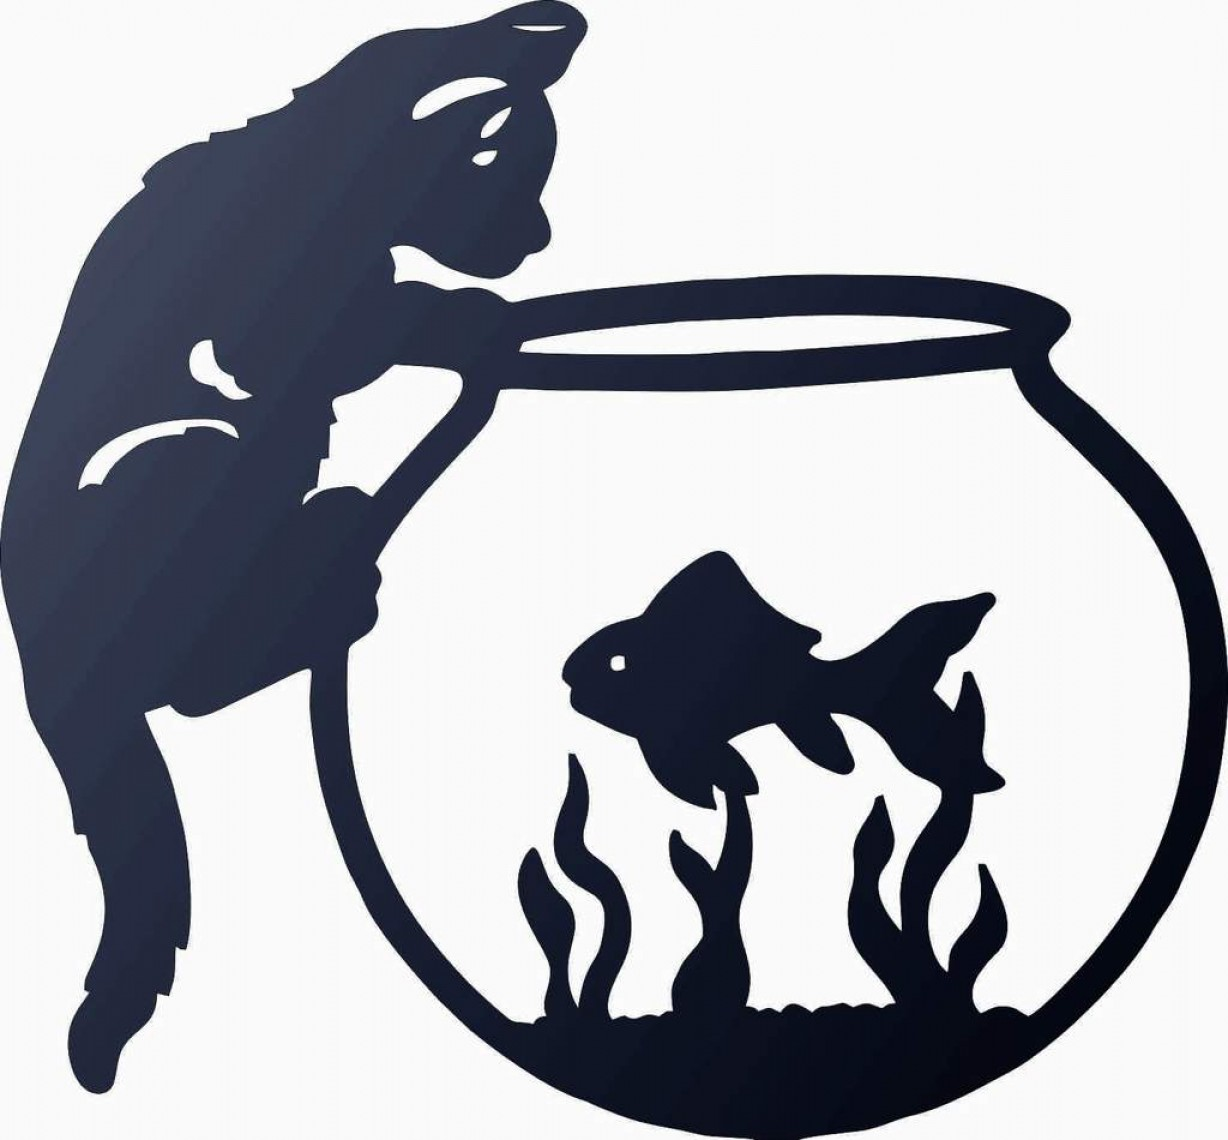 Plasma Art Fishing Vector Files: Cat And Fish Dxf Of Plasma Router Laser Cut Cnc Vector Dxf Cdr Ai Jpeg